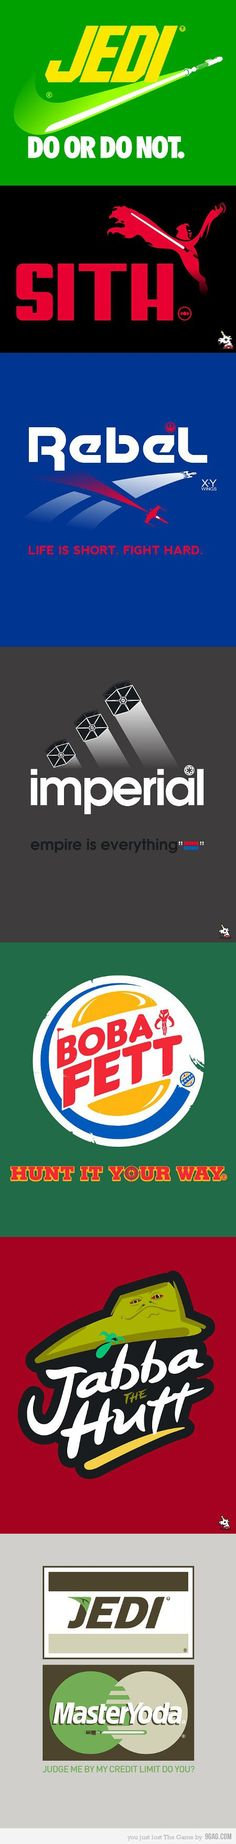 Star Wars Advertisements